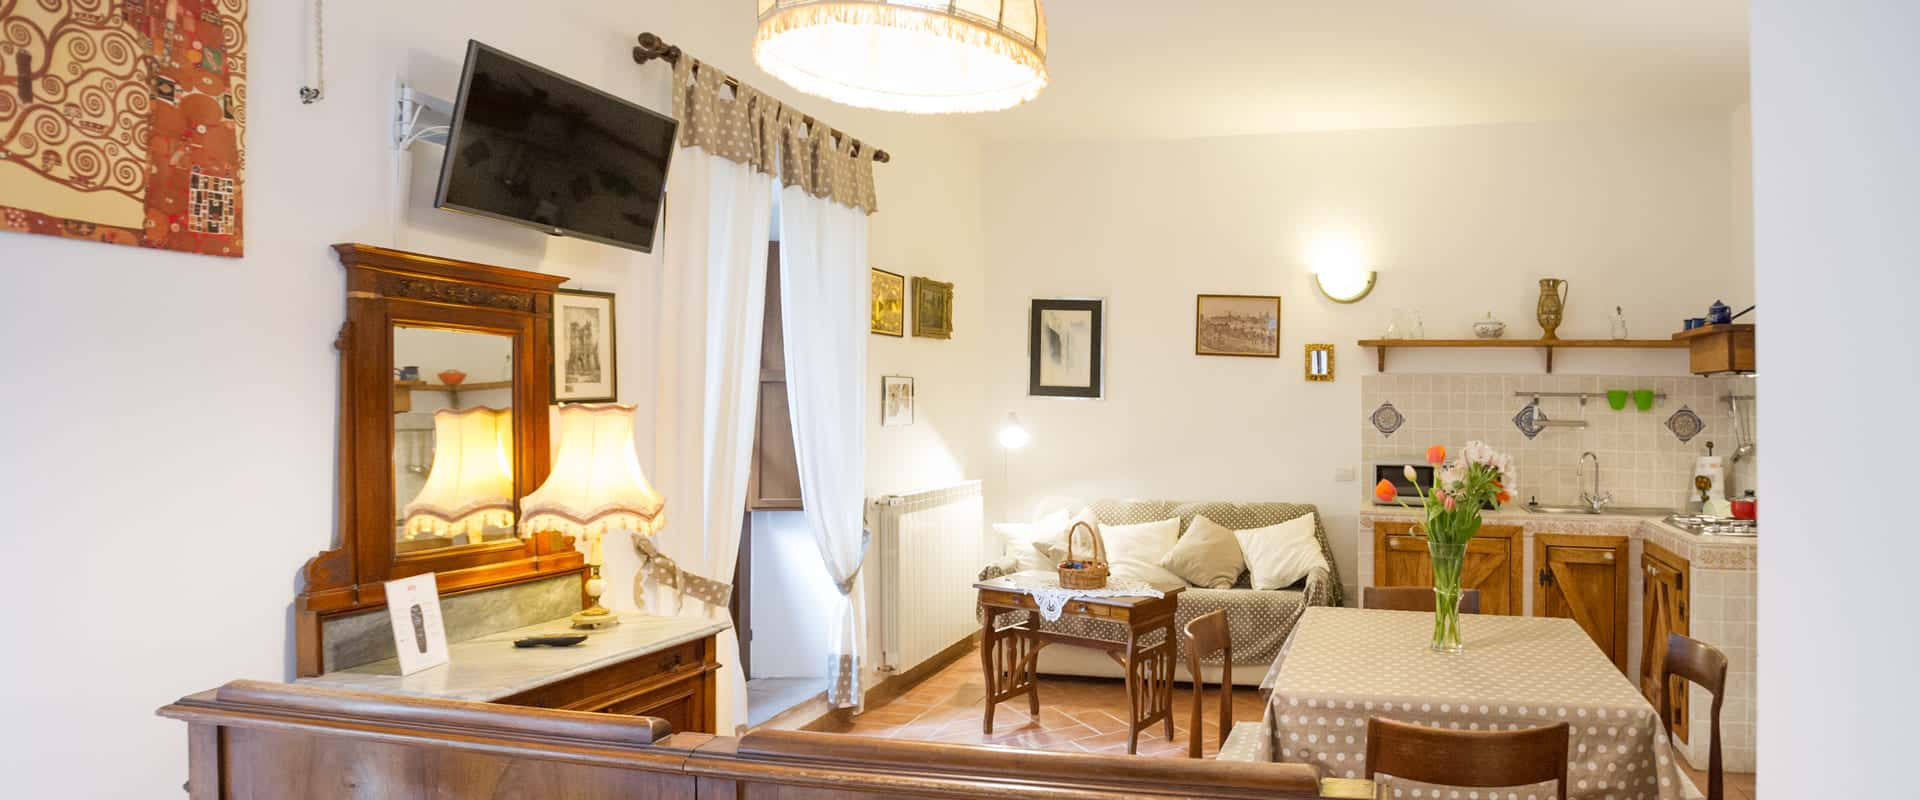 bed breakfast orvieto 1